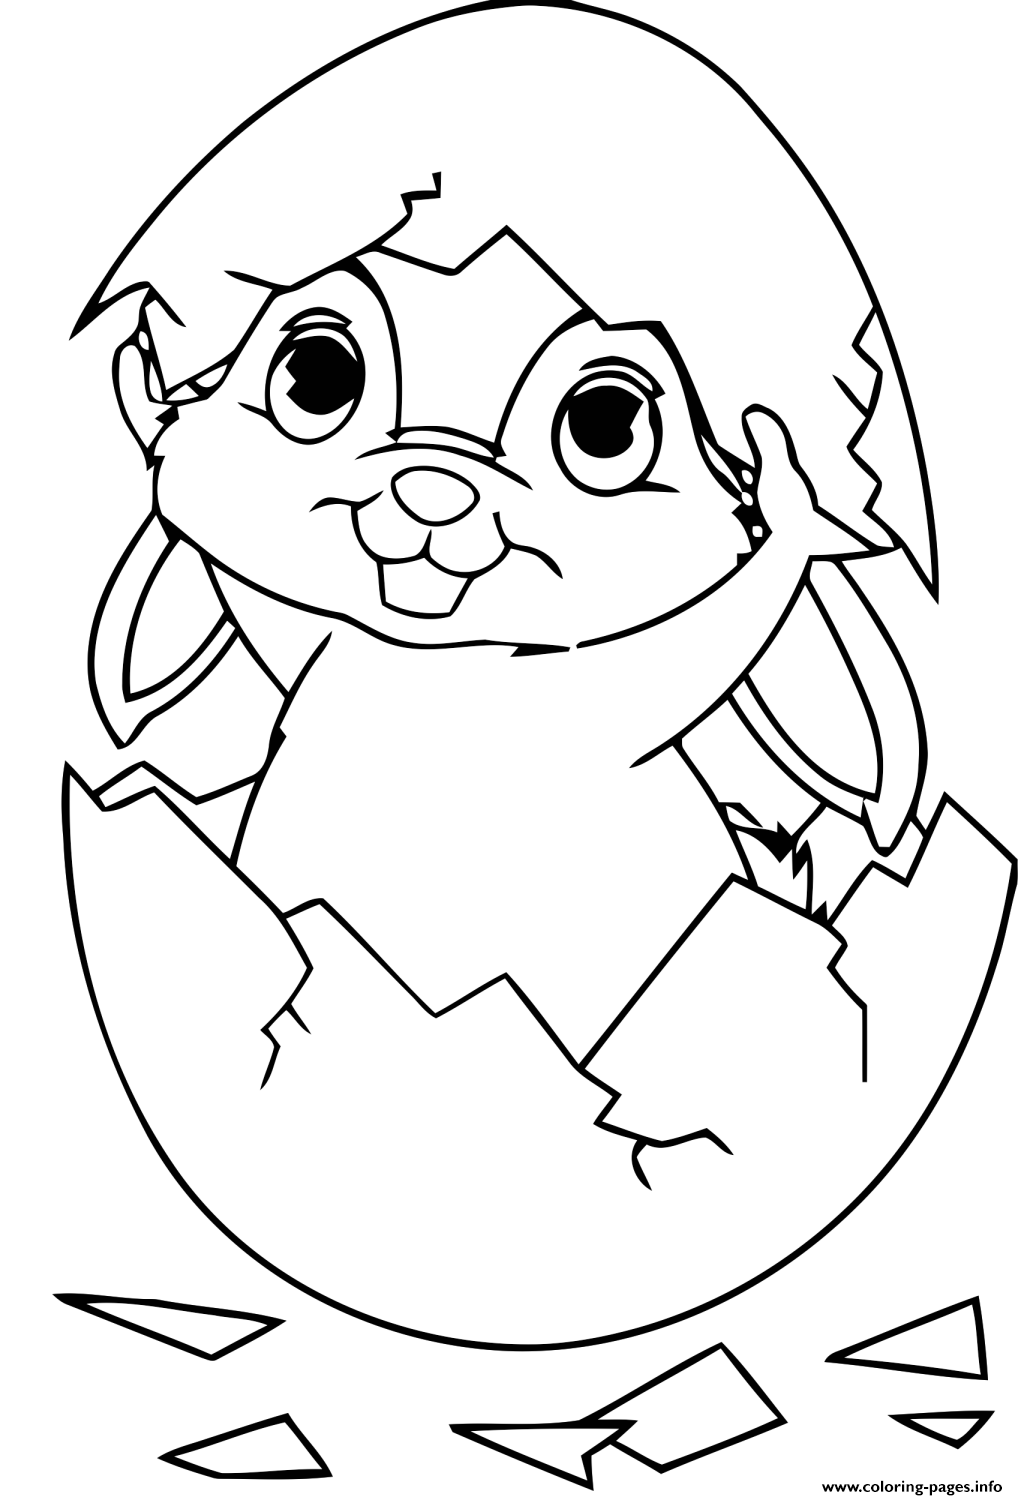 Baby Easter Bunny Egg Coloring Pages Printable